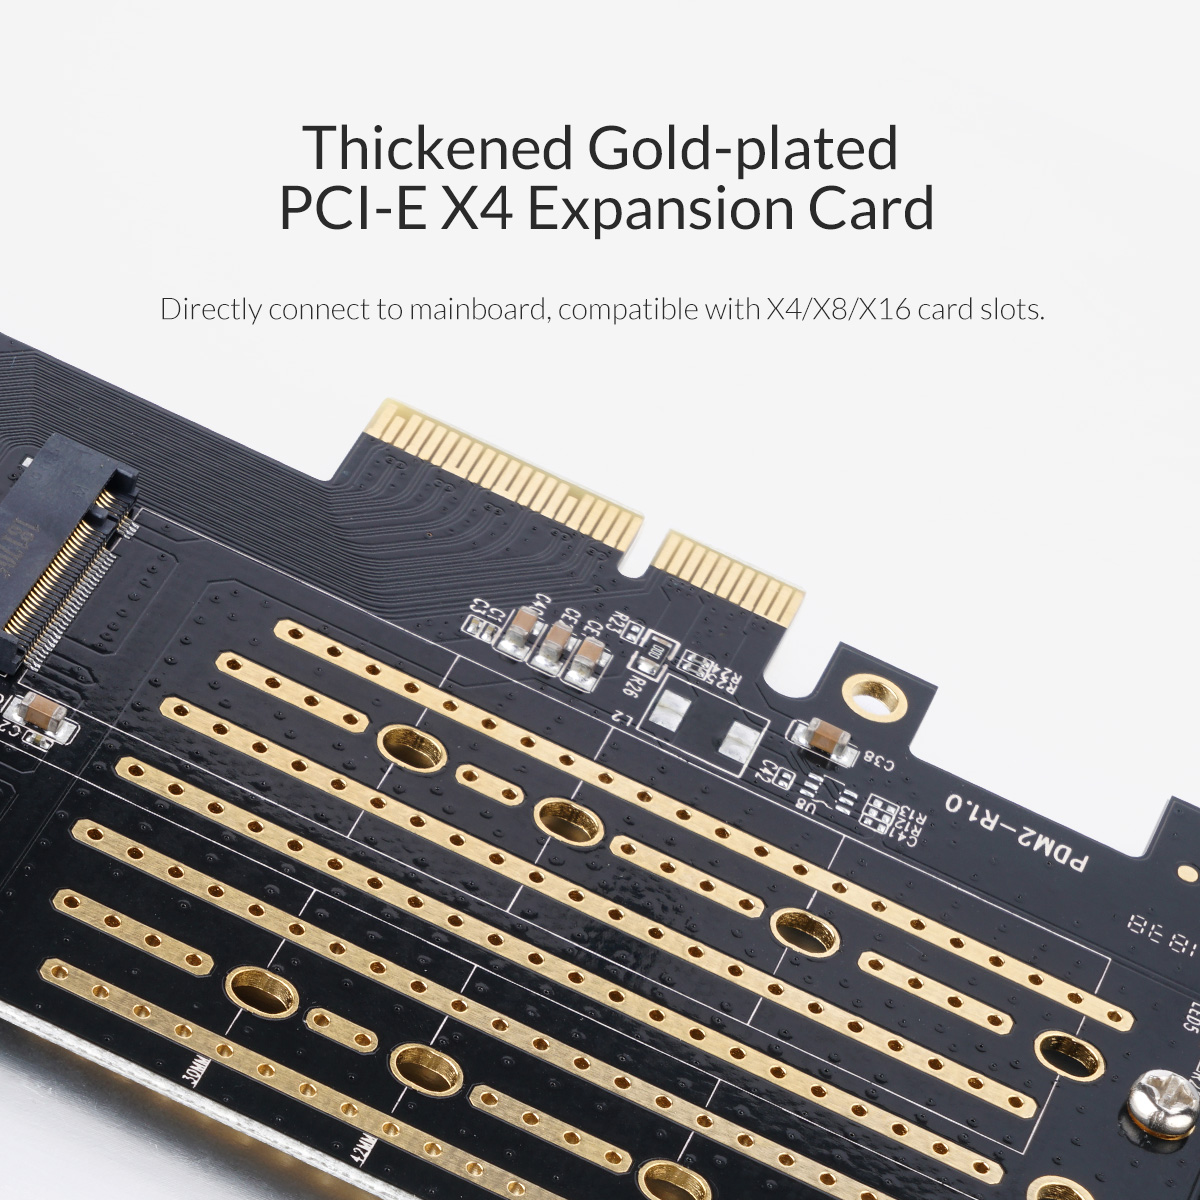 Thickened Gold-Plated PCI-E X4 Expansion card